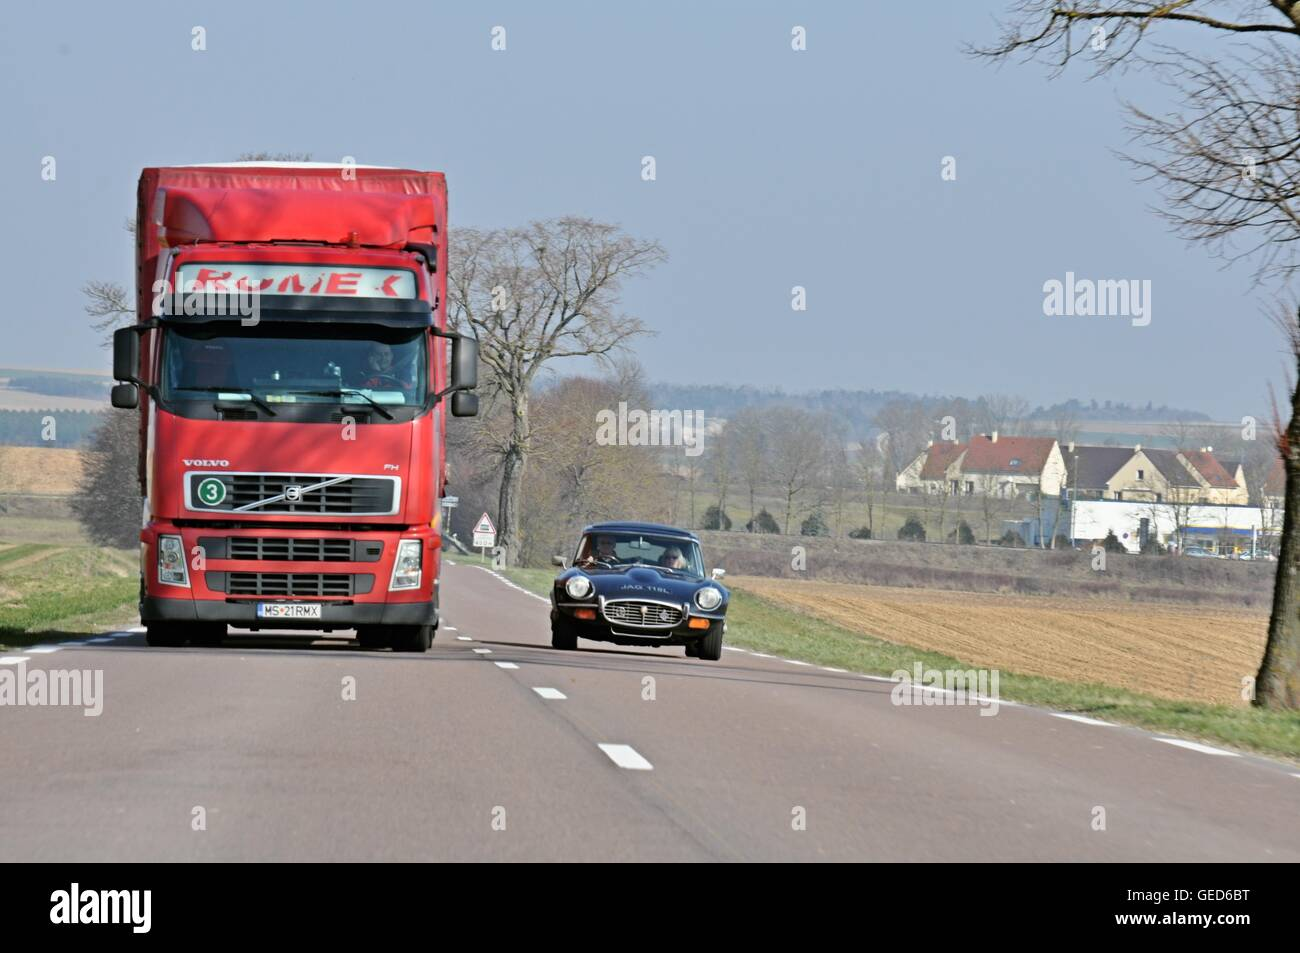 Jaguar E-type classic car overtaking a large red articulated lorry on a clear road in the French countryside in - Stock Image